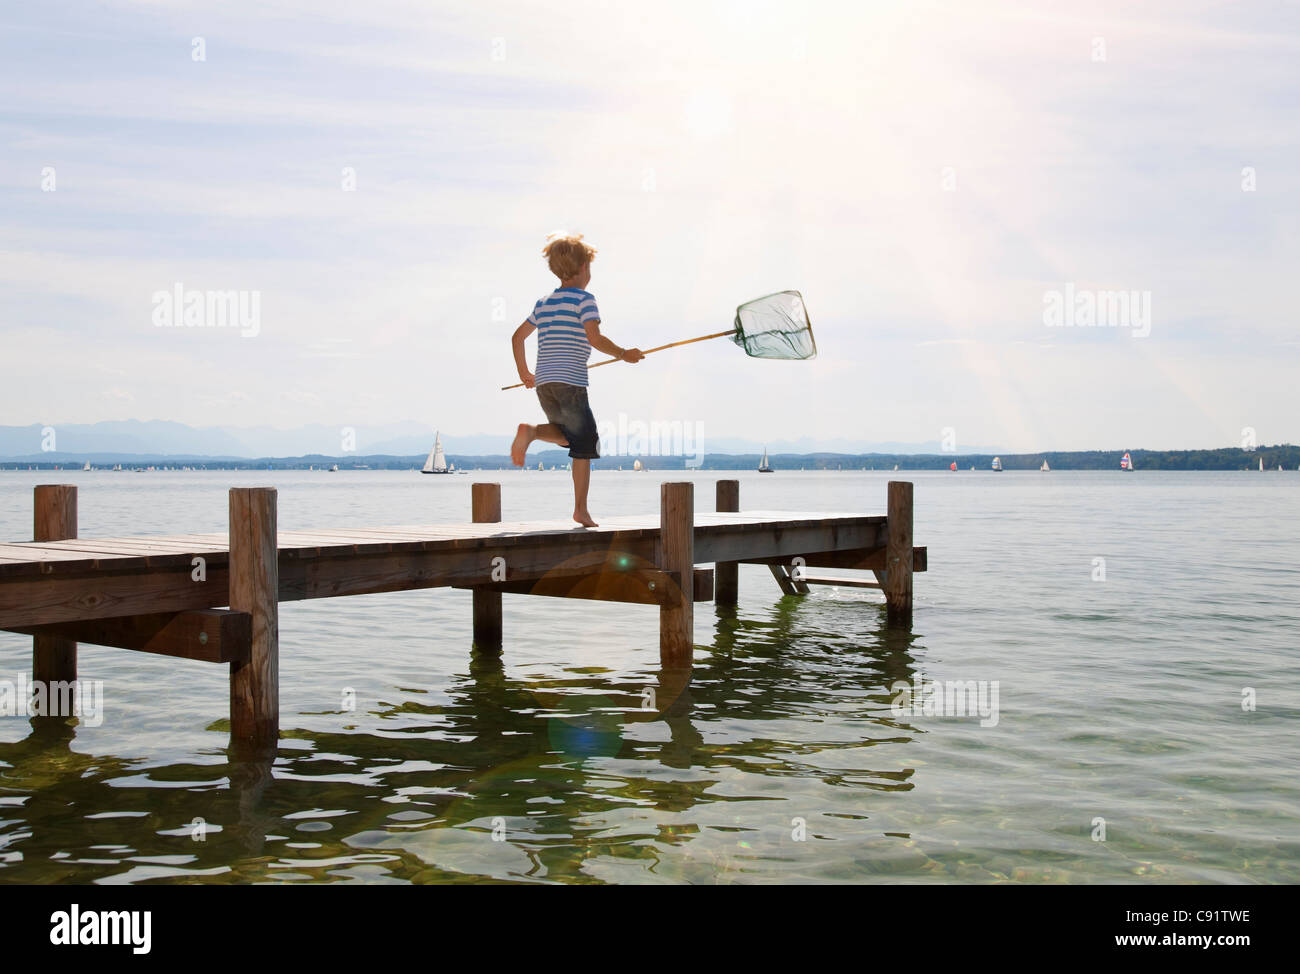 Boy running on dock with fishing net - Stock Image